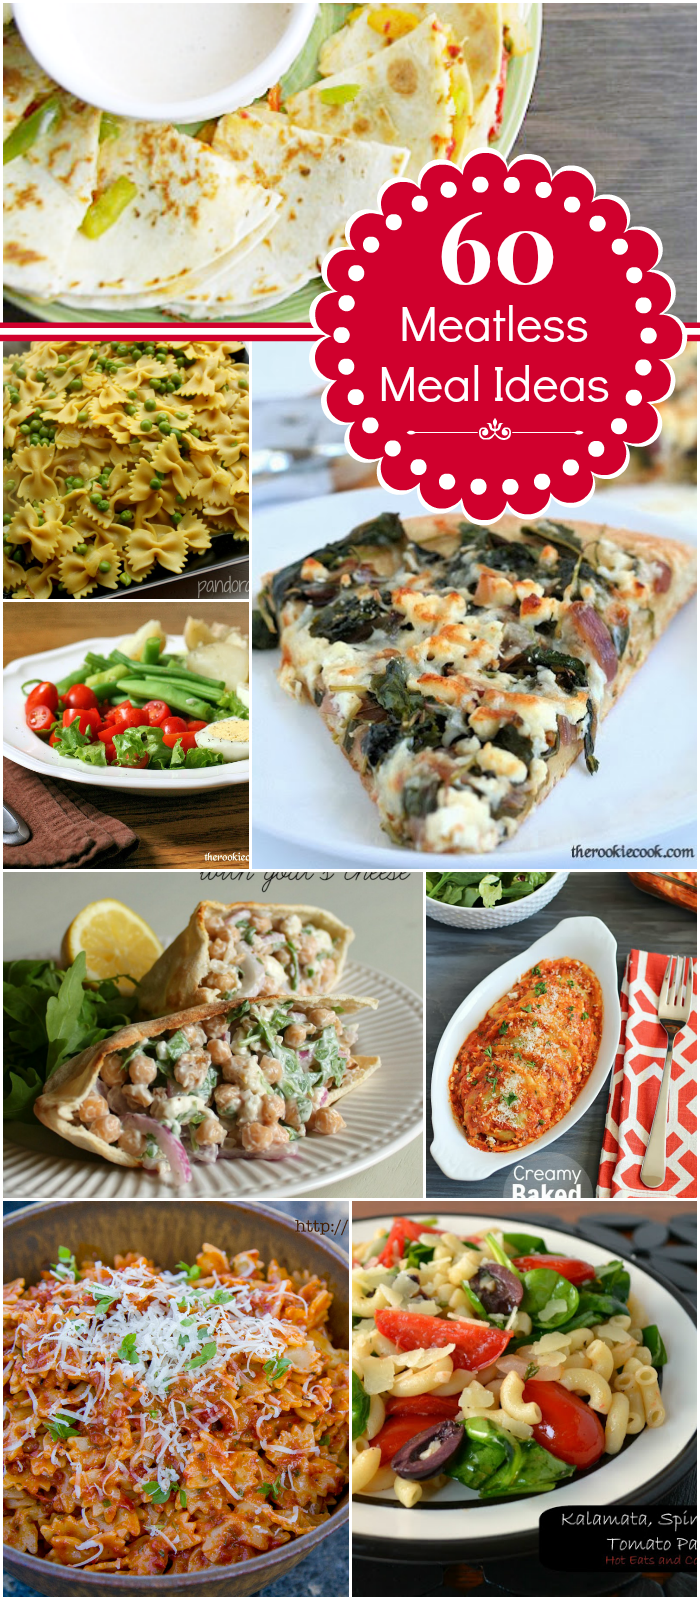 60 meatless meal ideas | meal ideas, meals and dinners